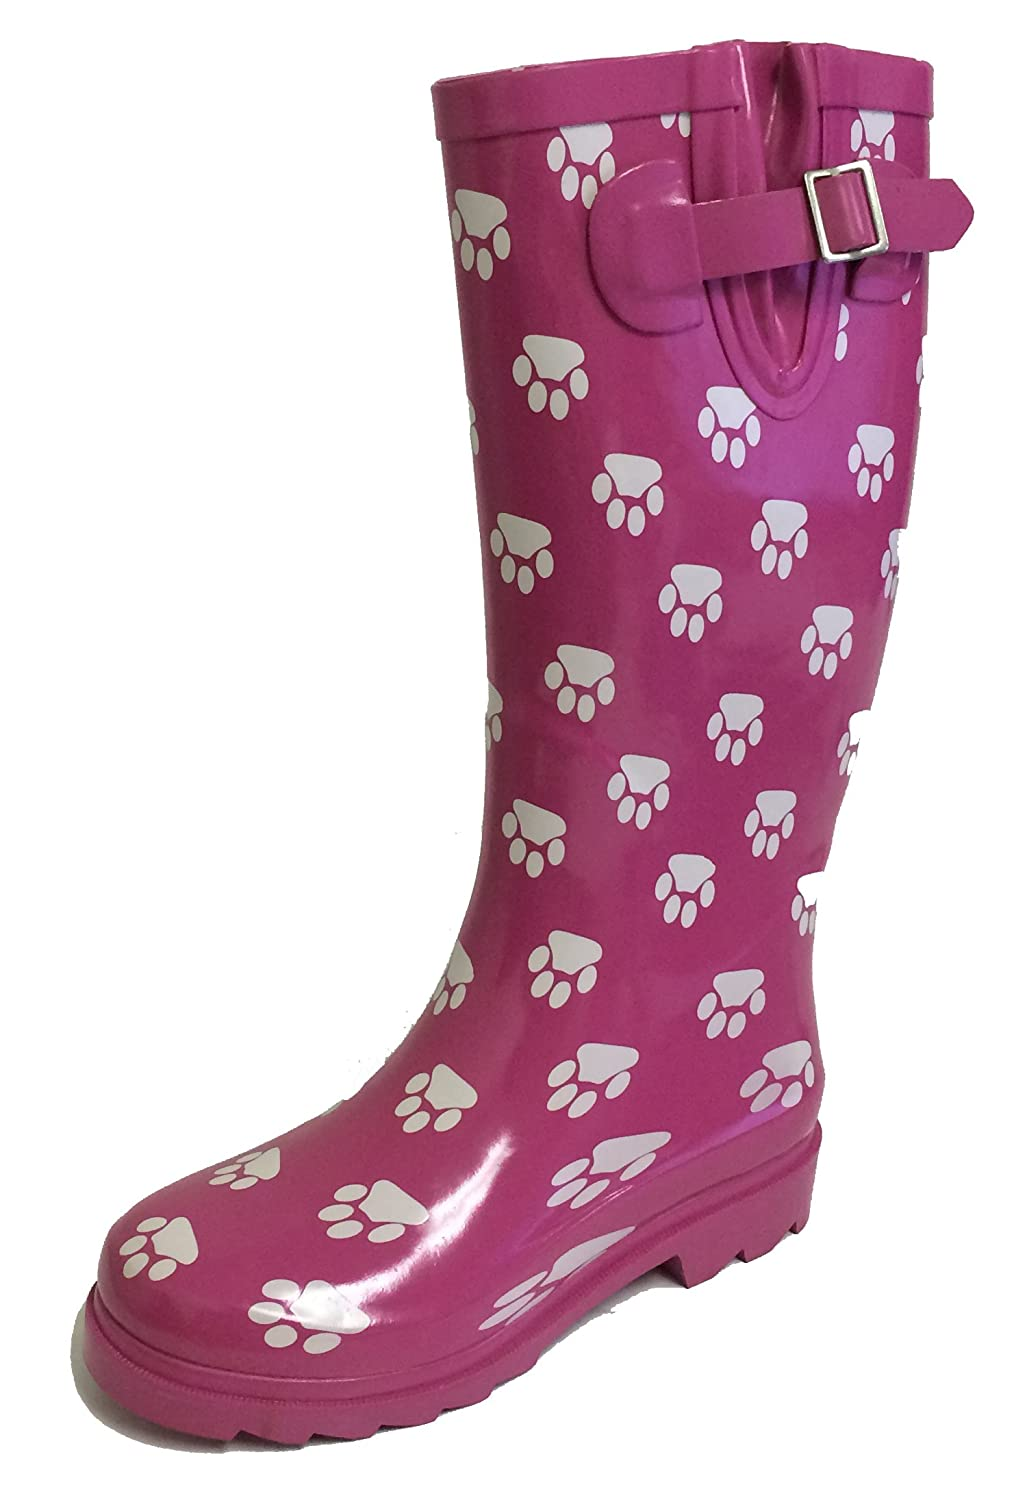 Pink Paws G4U Women's Rain Boots Multiple Styles color Mid Calf Wellies Buckle Fashion Rubber Knee High Snow shoes